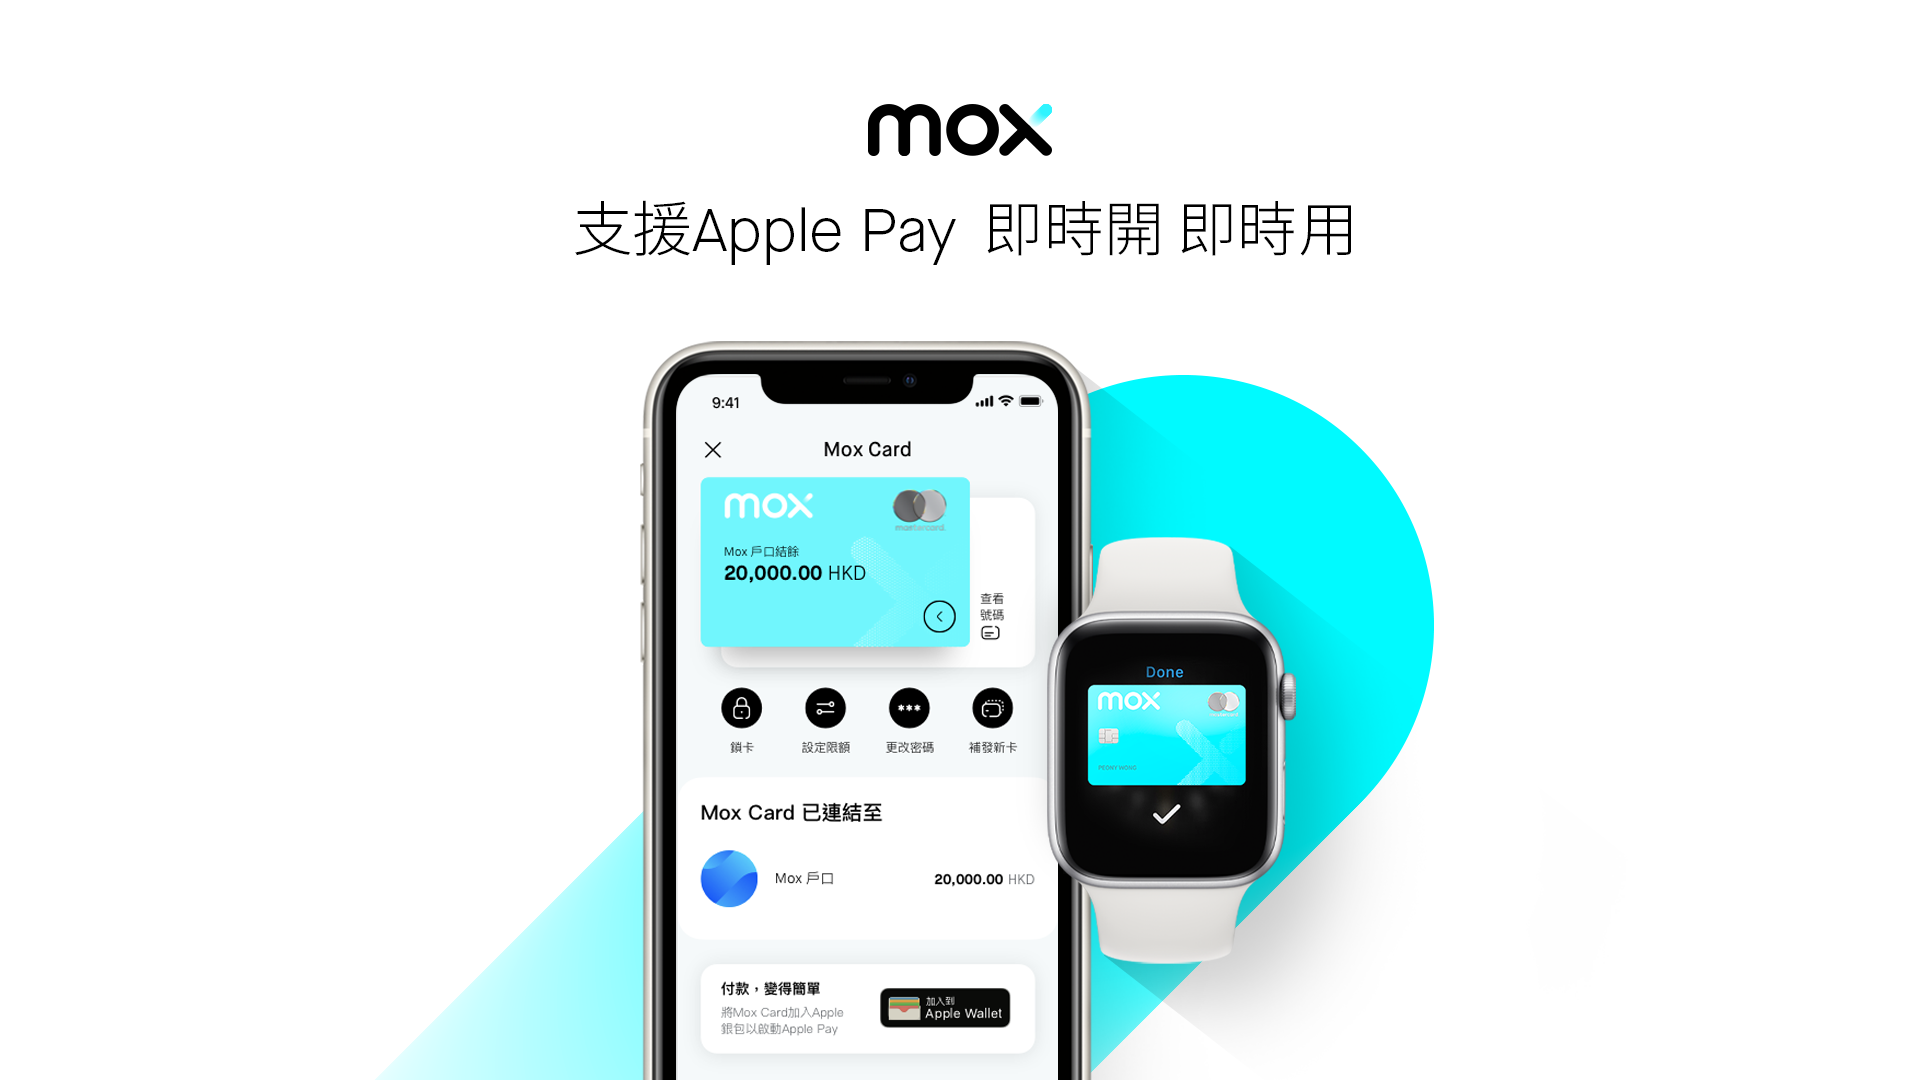 Mox支援Apple Pay